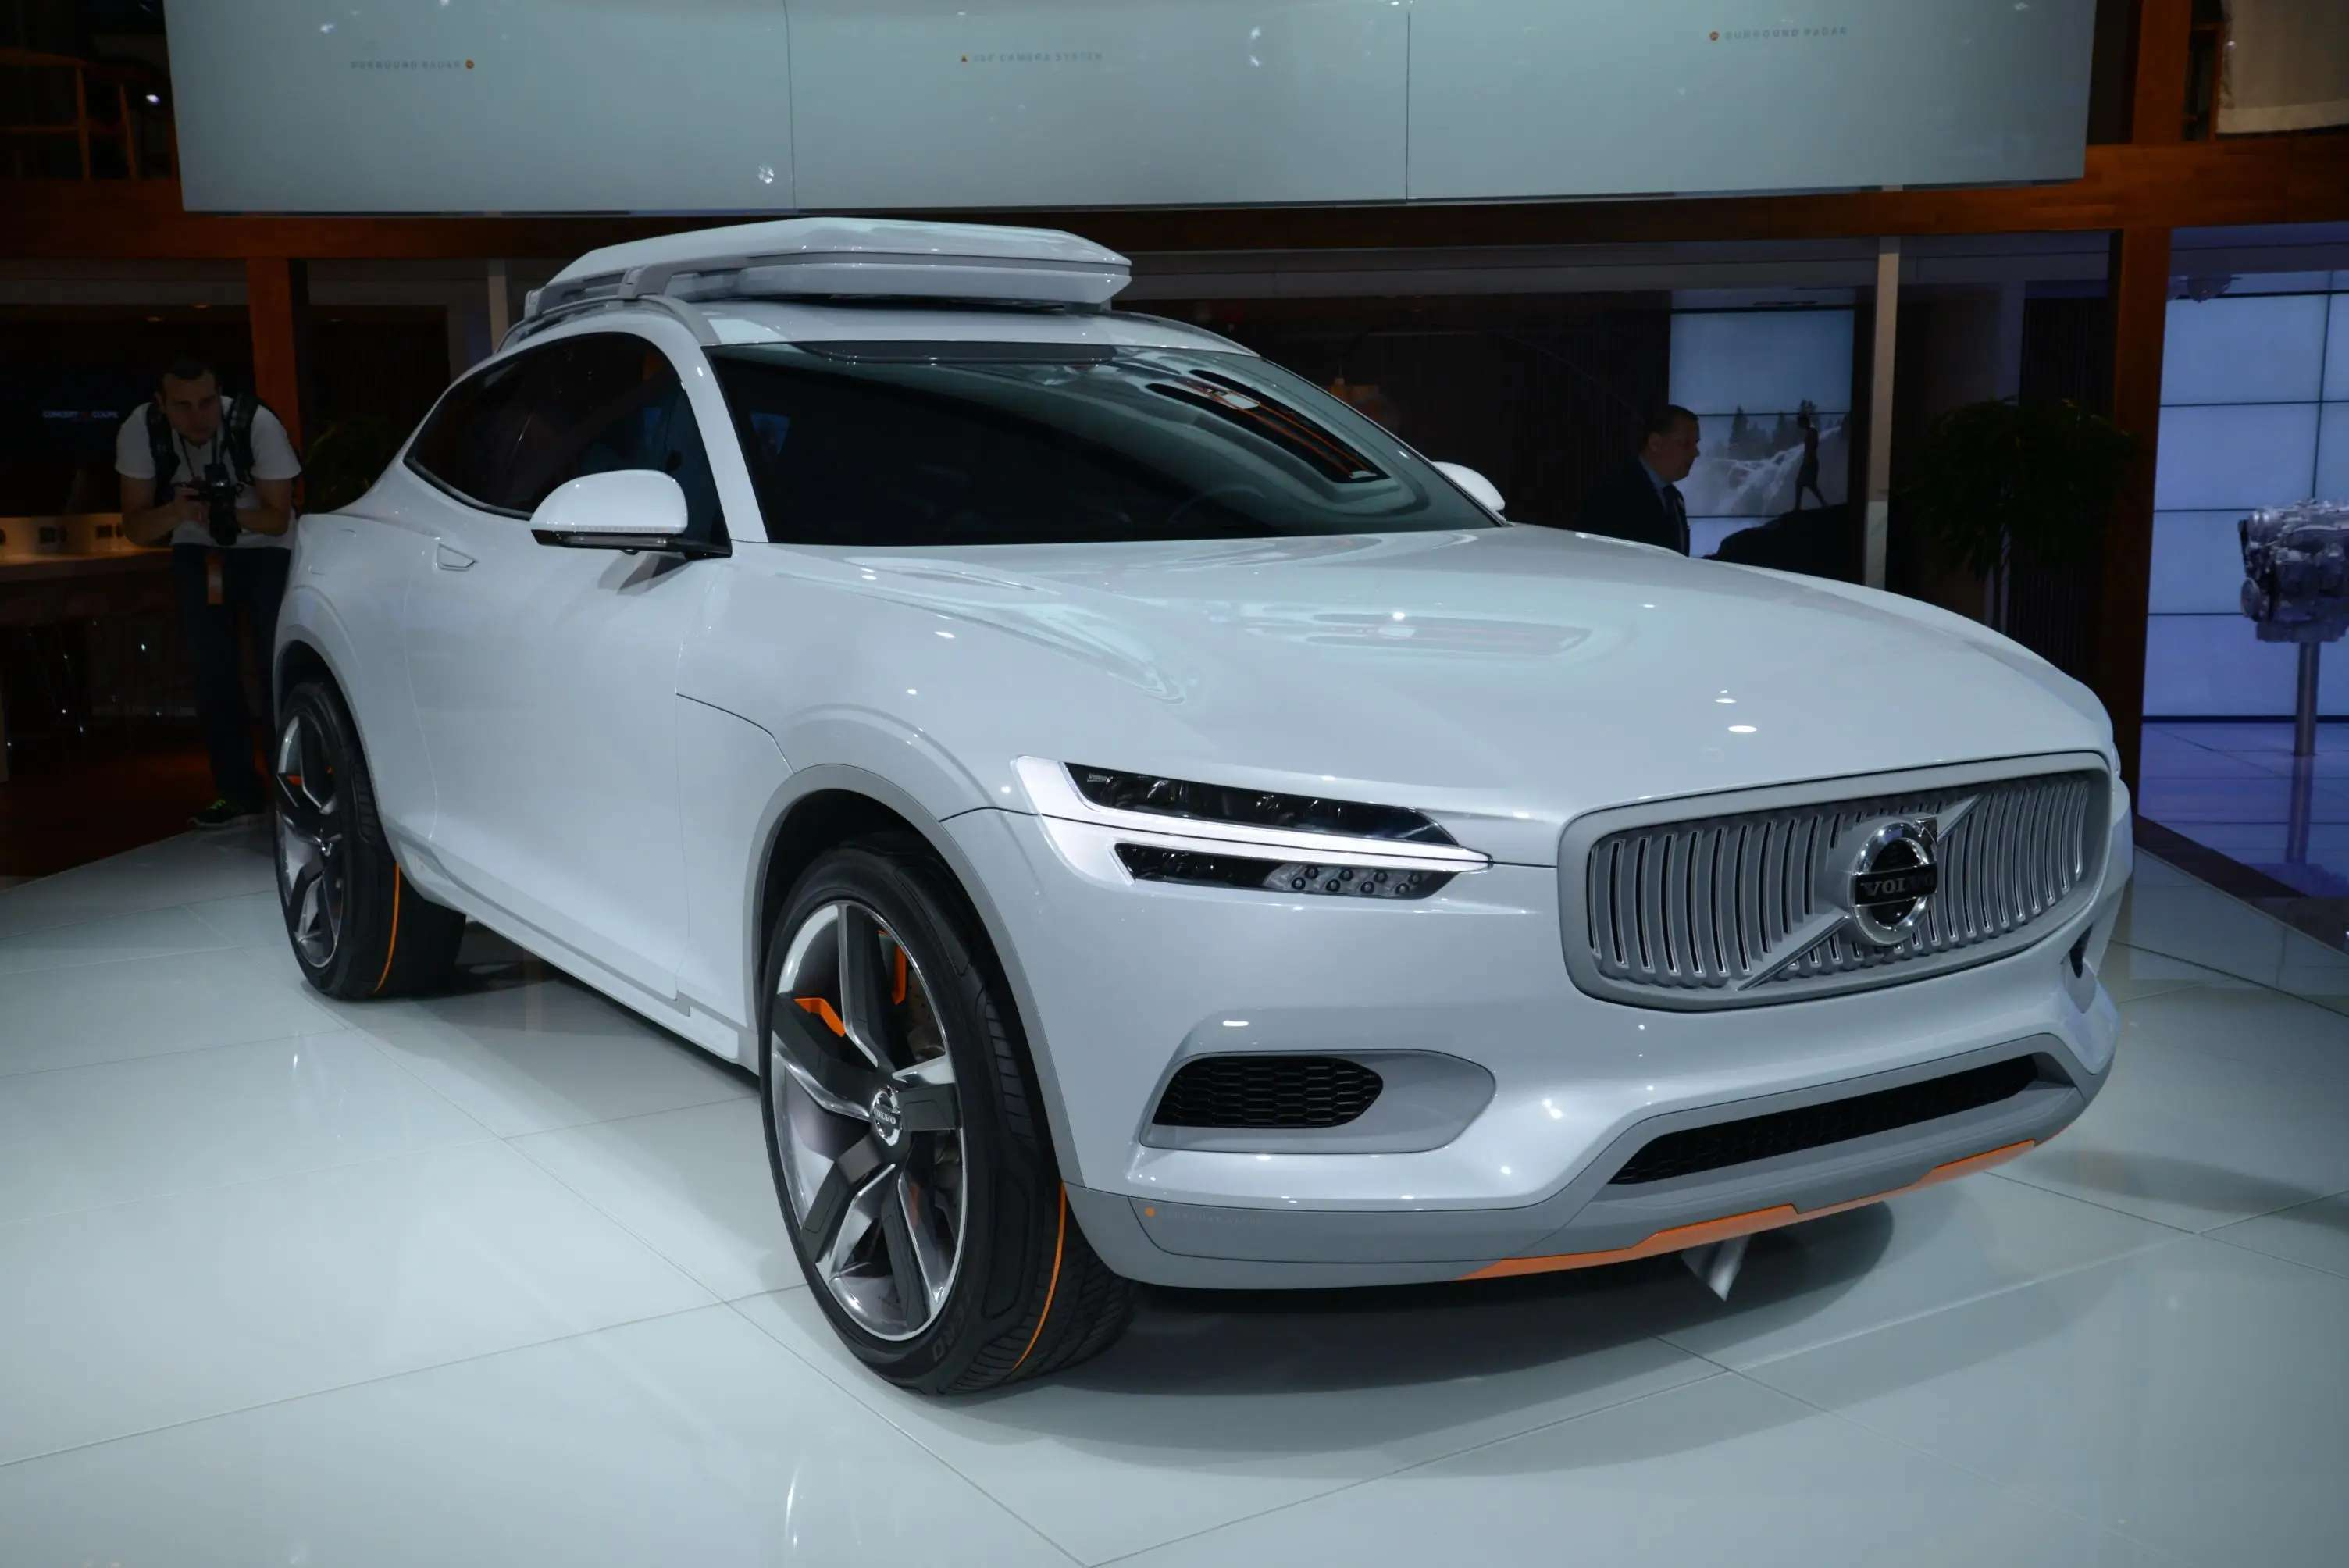 Volvo's Concept XC Coupé is a sleek ride that will let customers